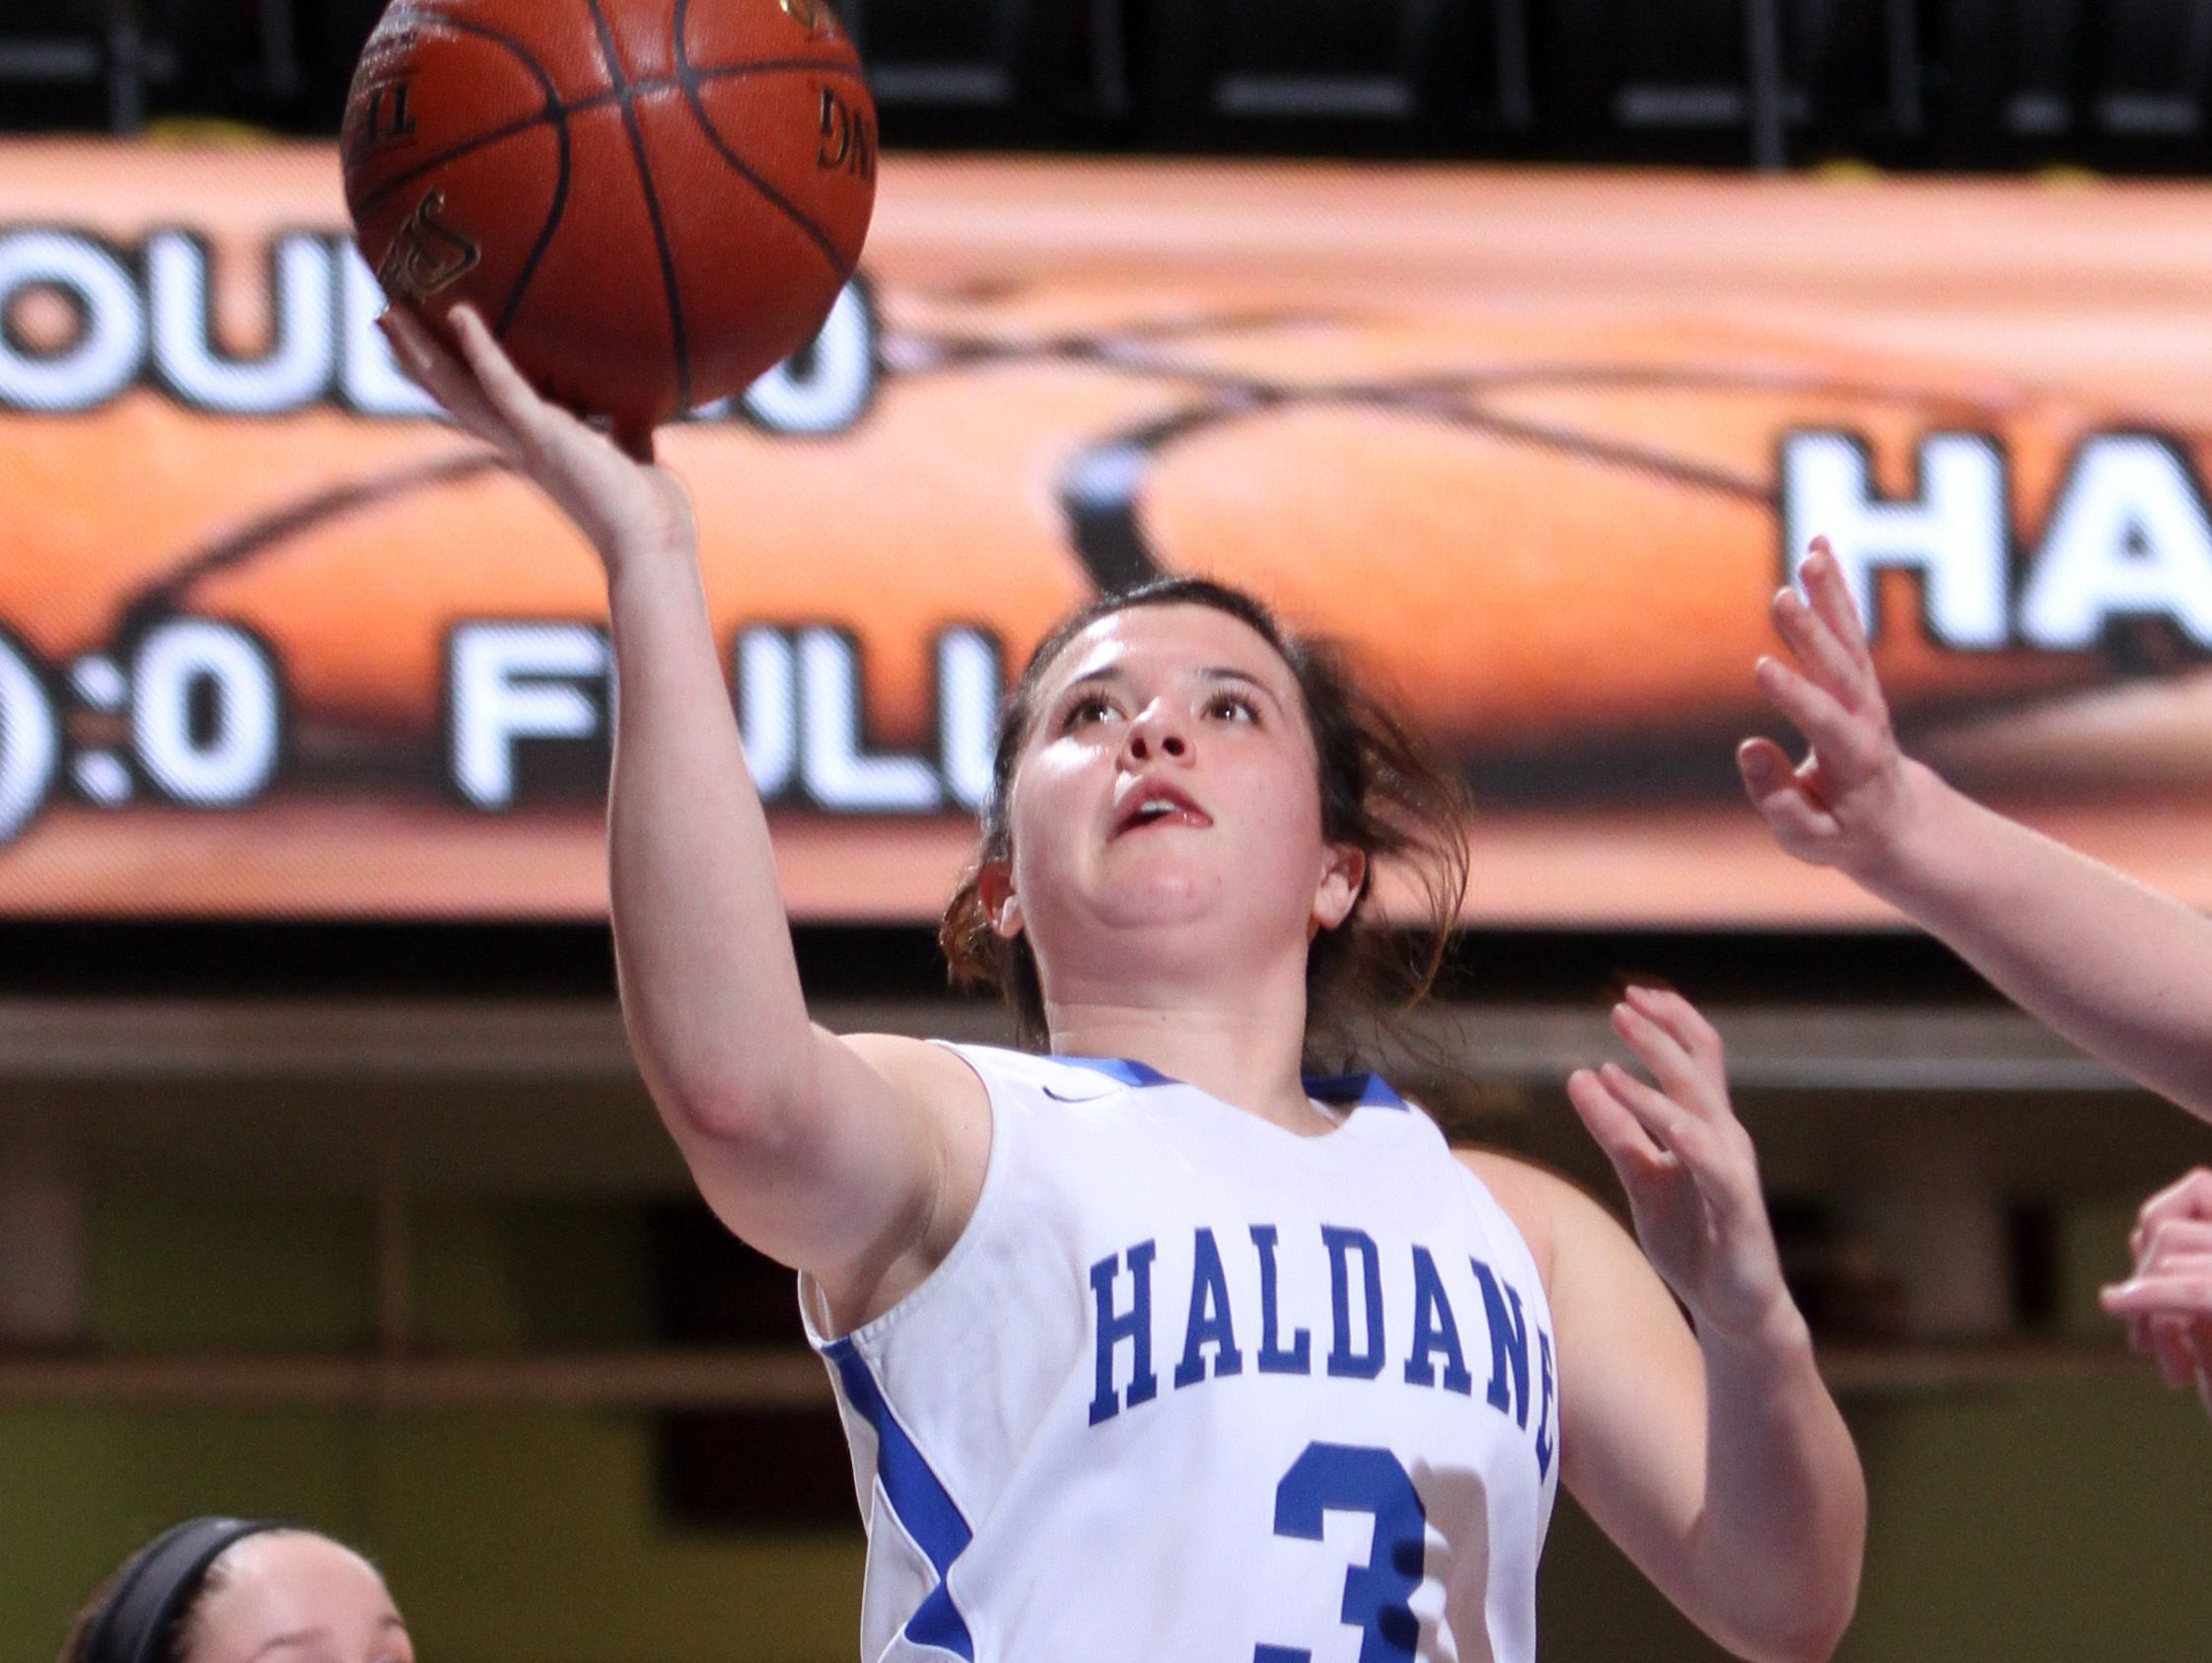 Haldane's Hannah Monteleone shoots during a Section 1 Class C semifinal basketball game against Pawling at the Westchester County Center Feb. 28, 2017. Haldane defeated Pawling 64-37.